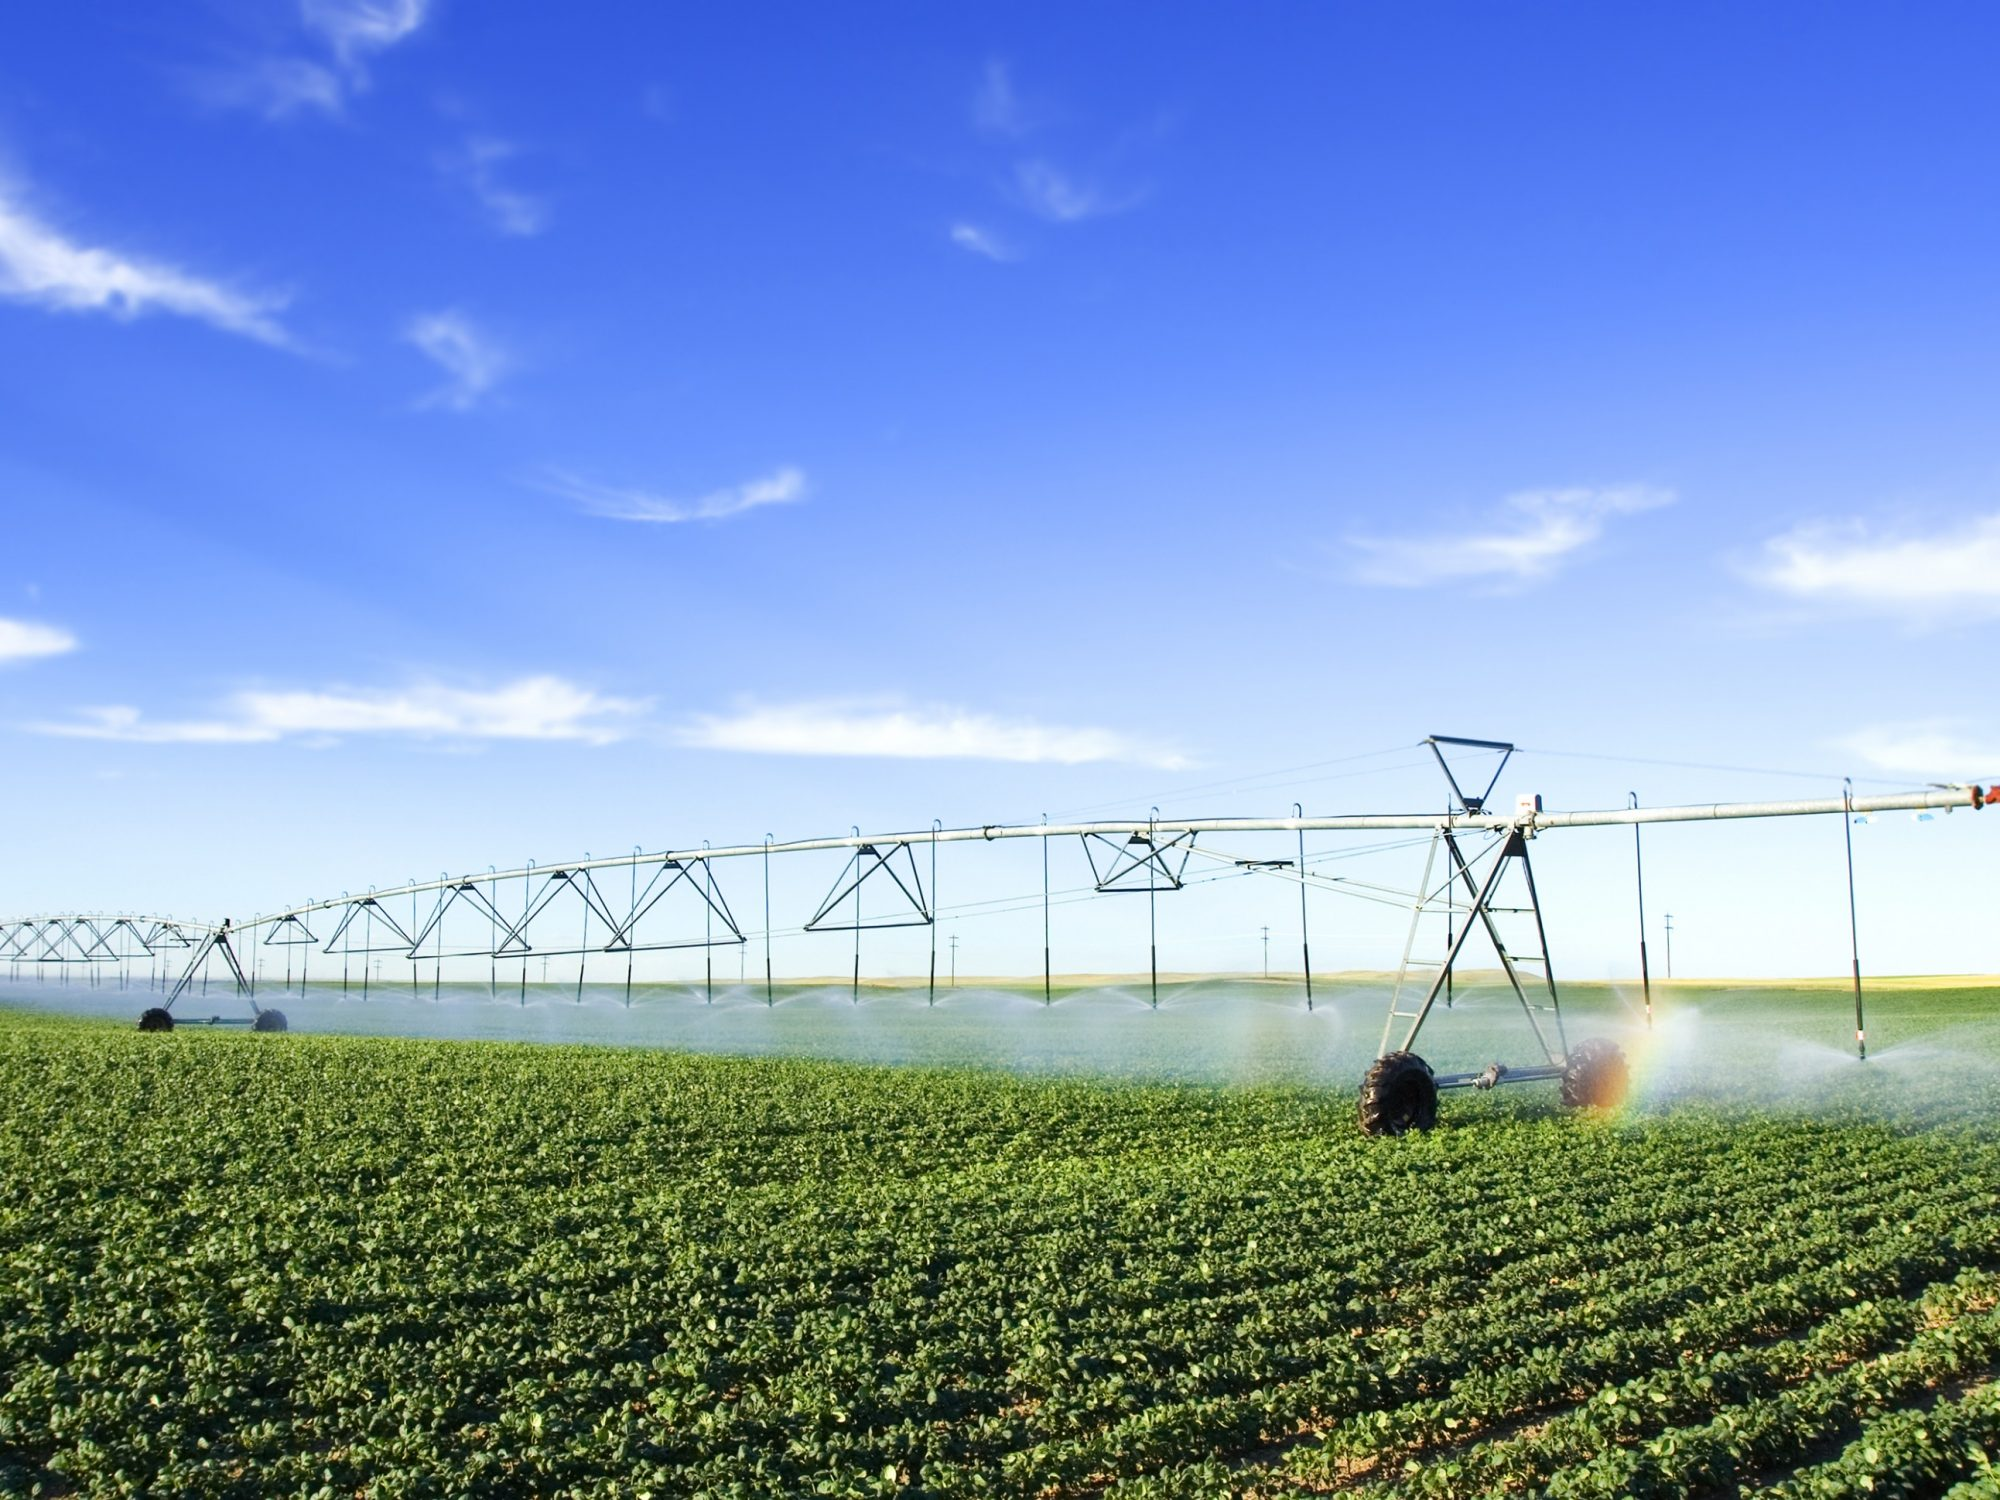 Irrigation on a farm in Zimbabwe